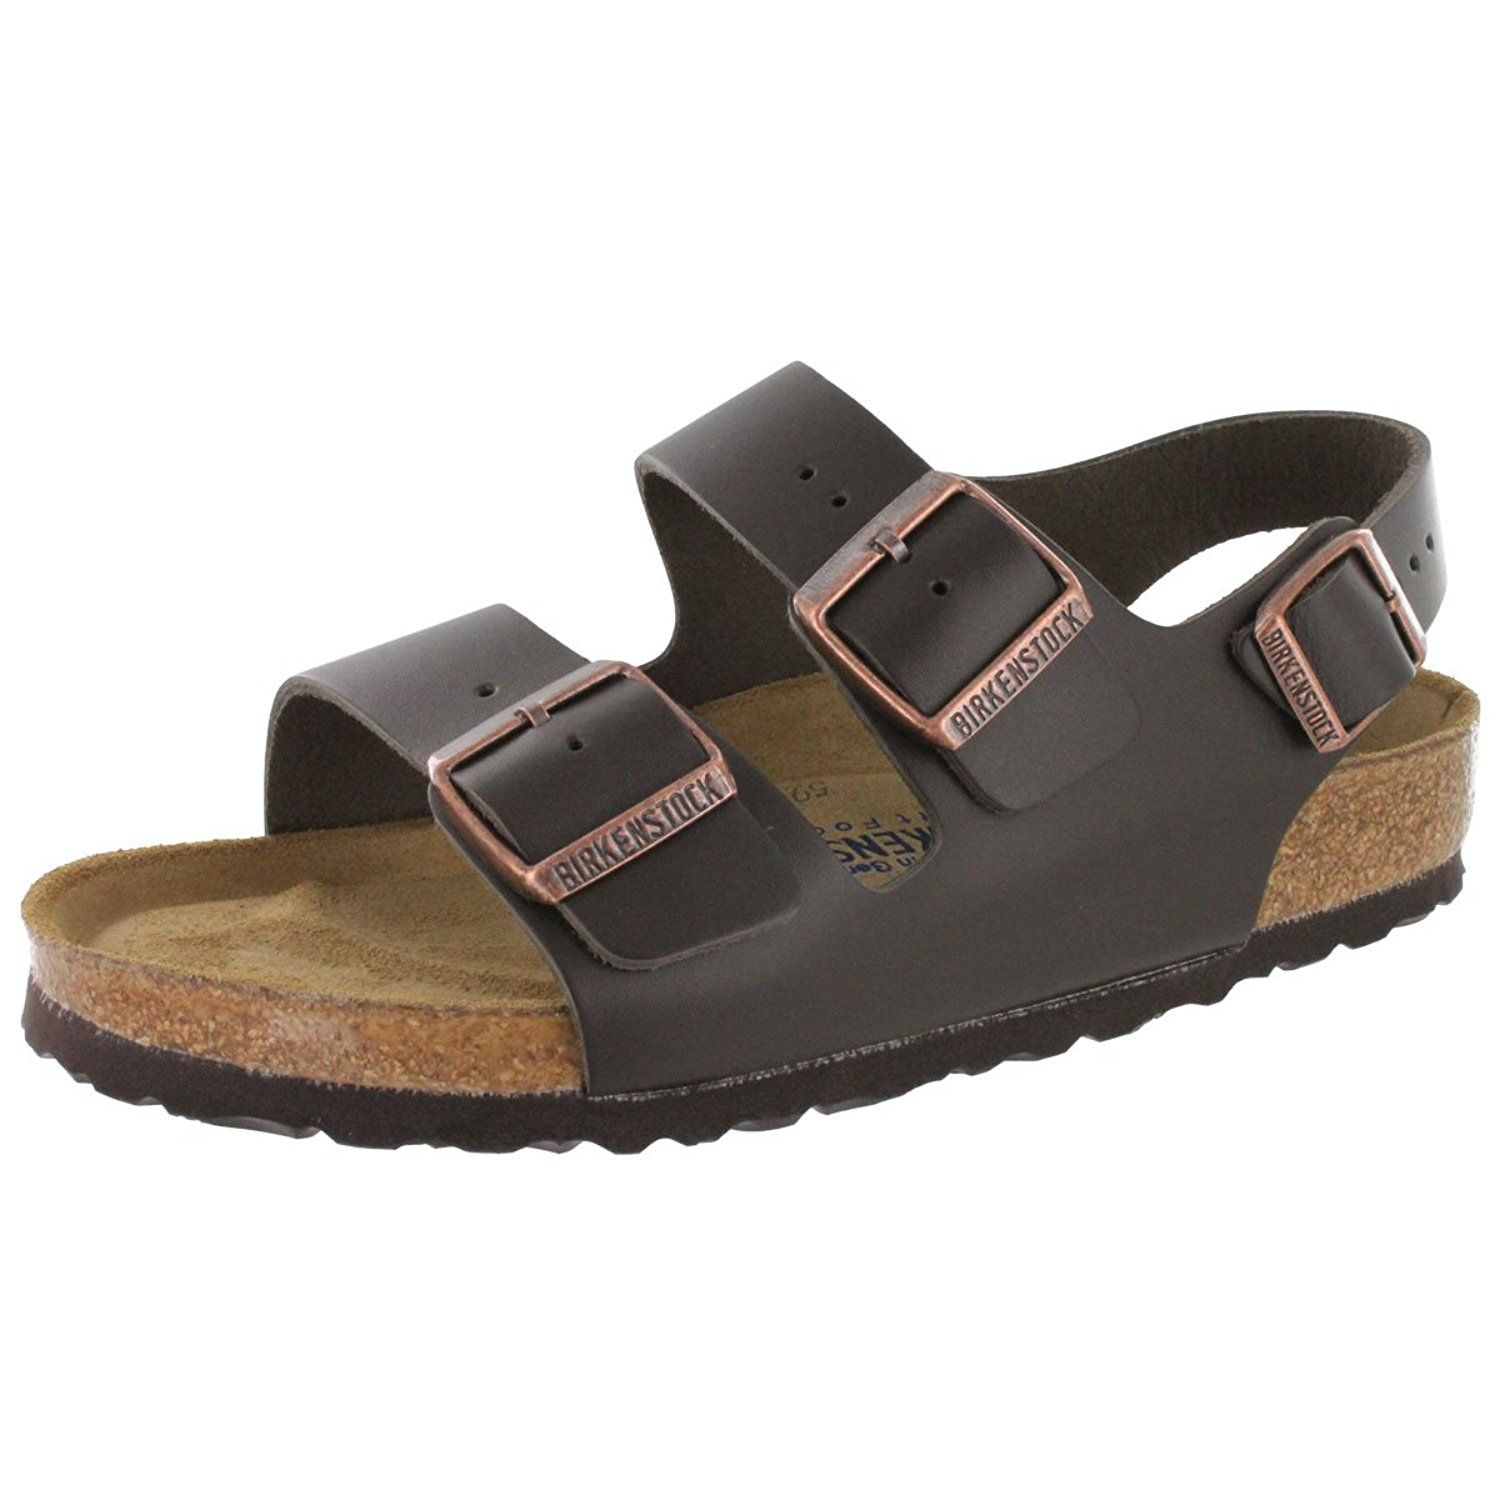 b5330e685b267d Birkenstock Women s Milano Backstrap Cork Footbed Sandal    Awesome outdoor  product. Click the image   Birkenstock sandals